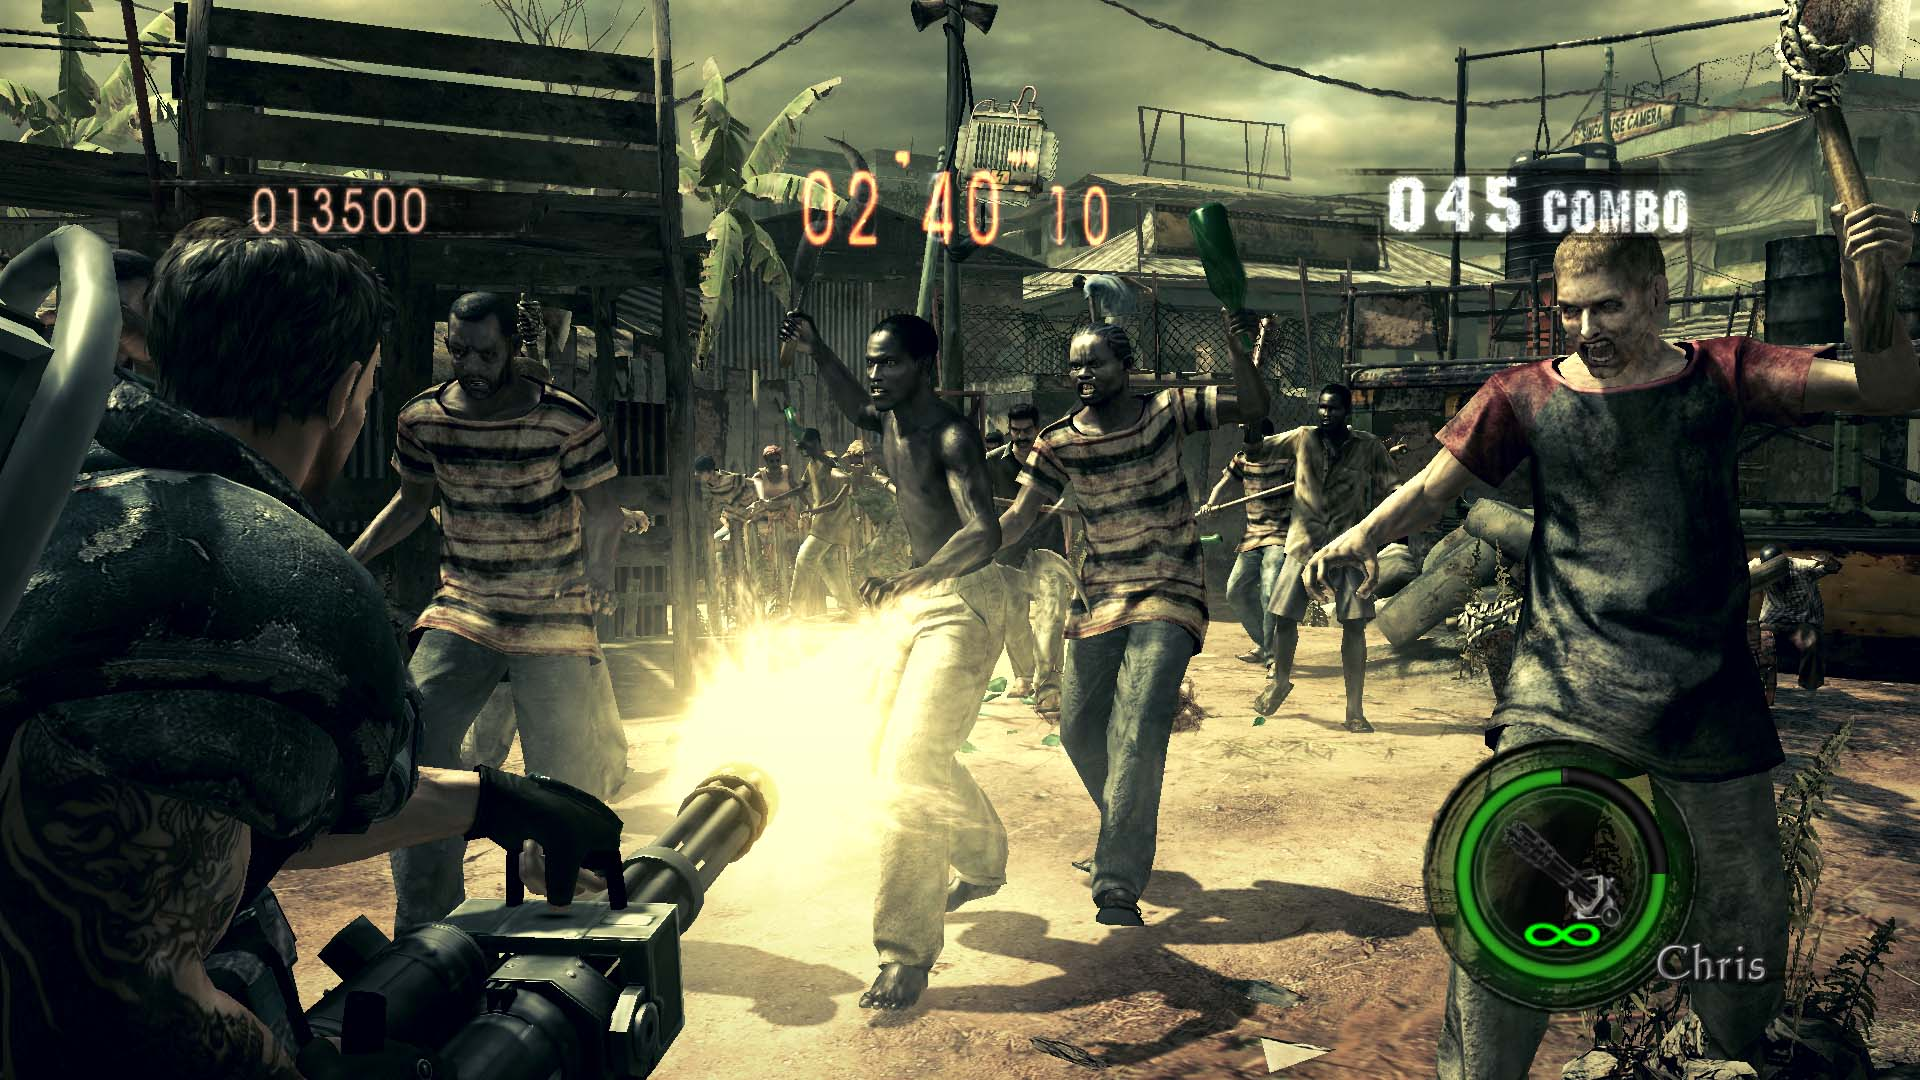 Resident evil 5 pron images nude streaming